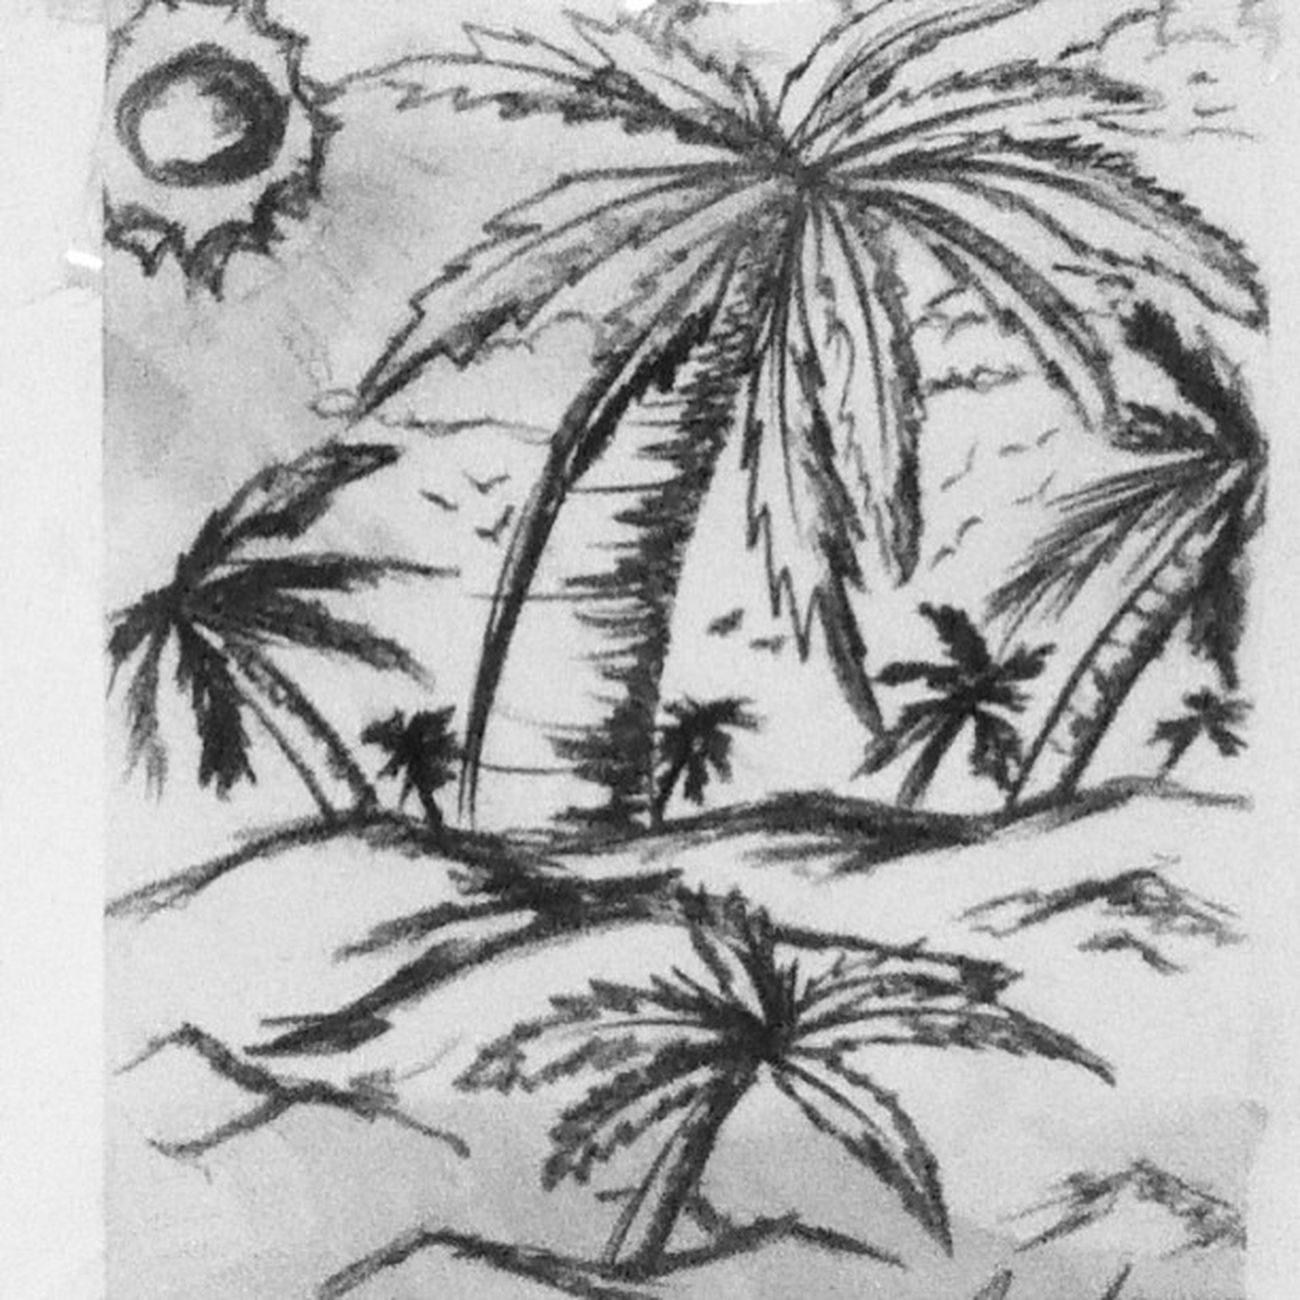 Montana Palm Beach Sombre Sun Black And White Birds Charcoal Drawing Landscape Natural Green Palms Depth Brightness Goo Love Like Like4like Instalike Instagood Instafollow Follow art